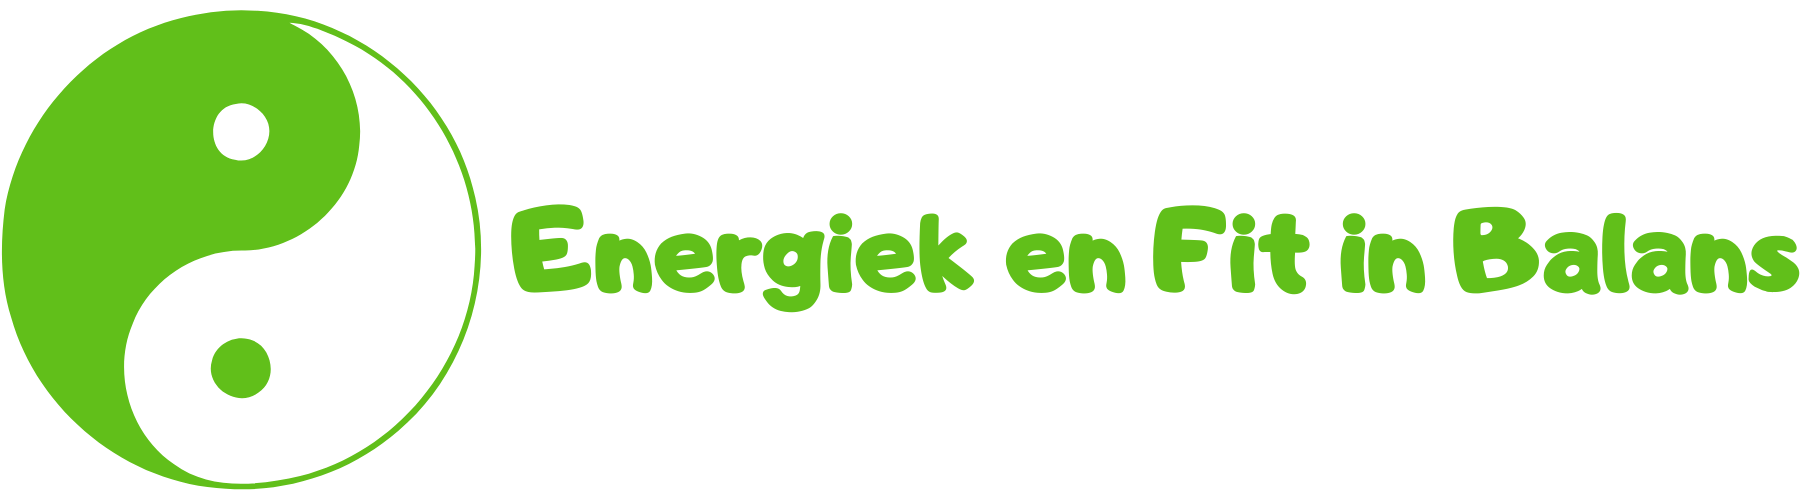 energiek en fit in balans